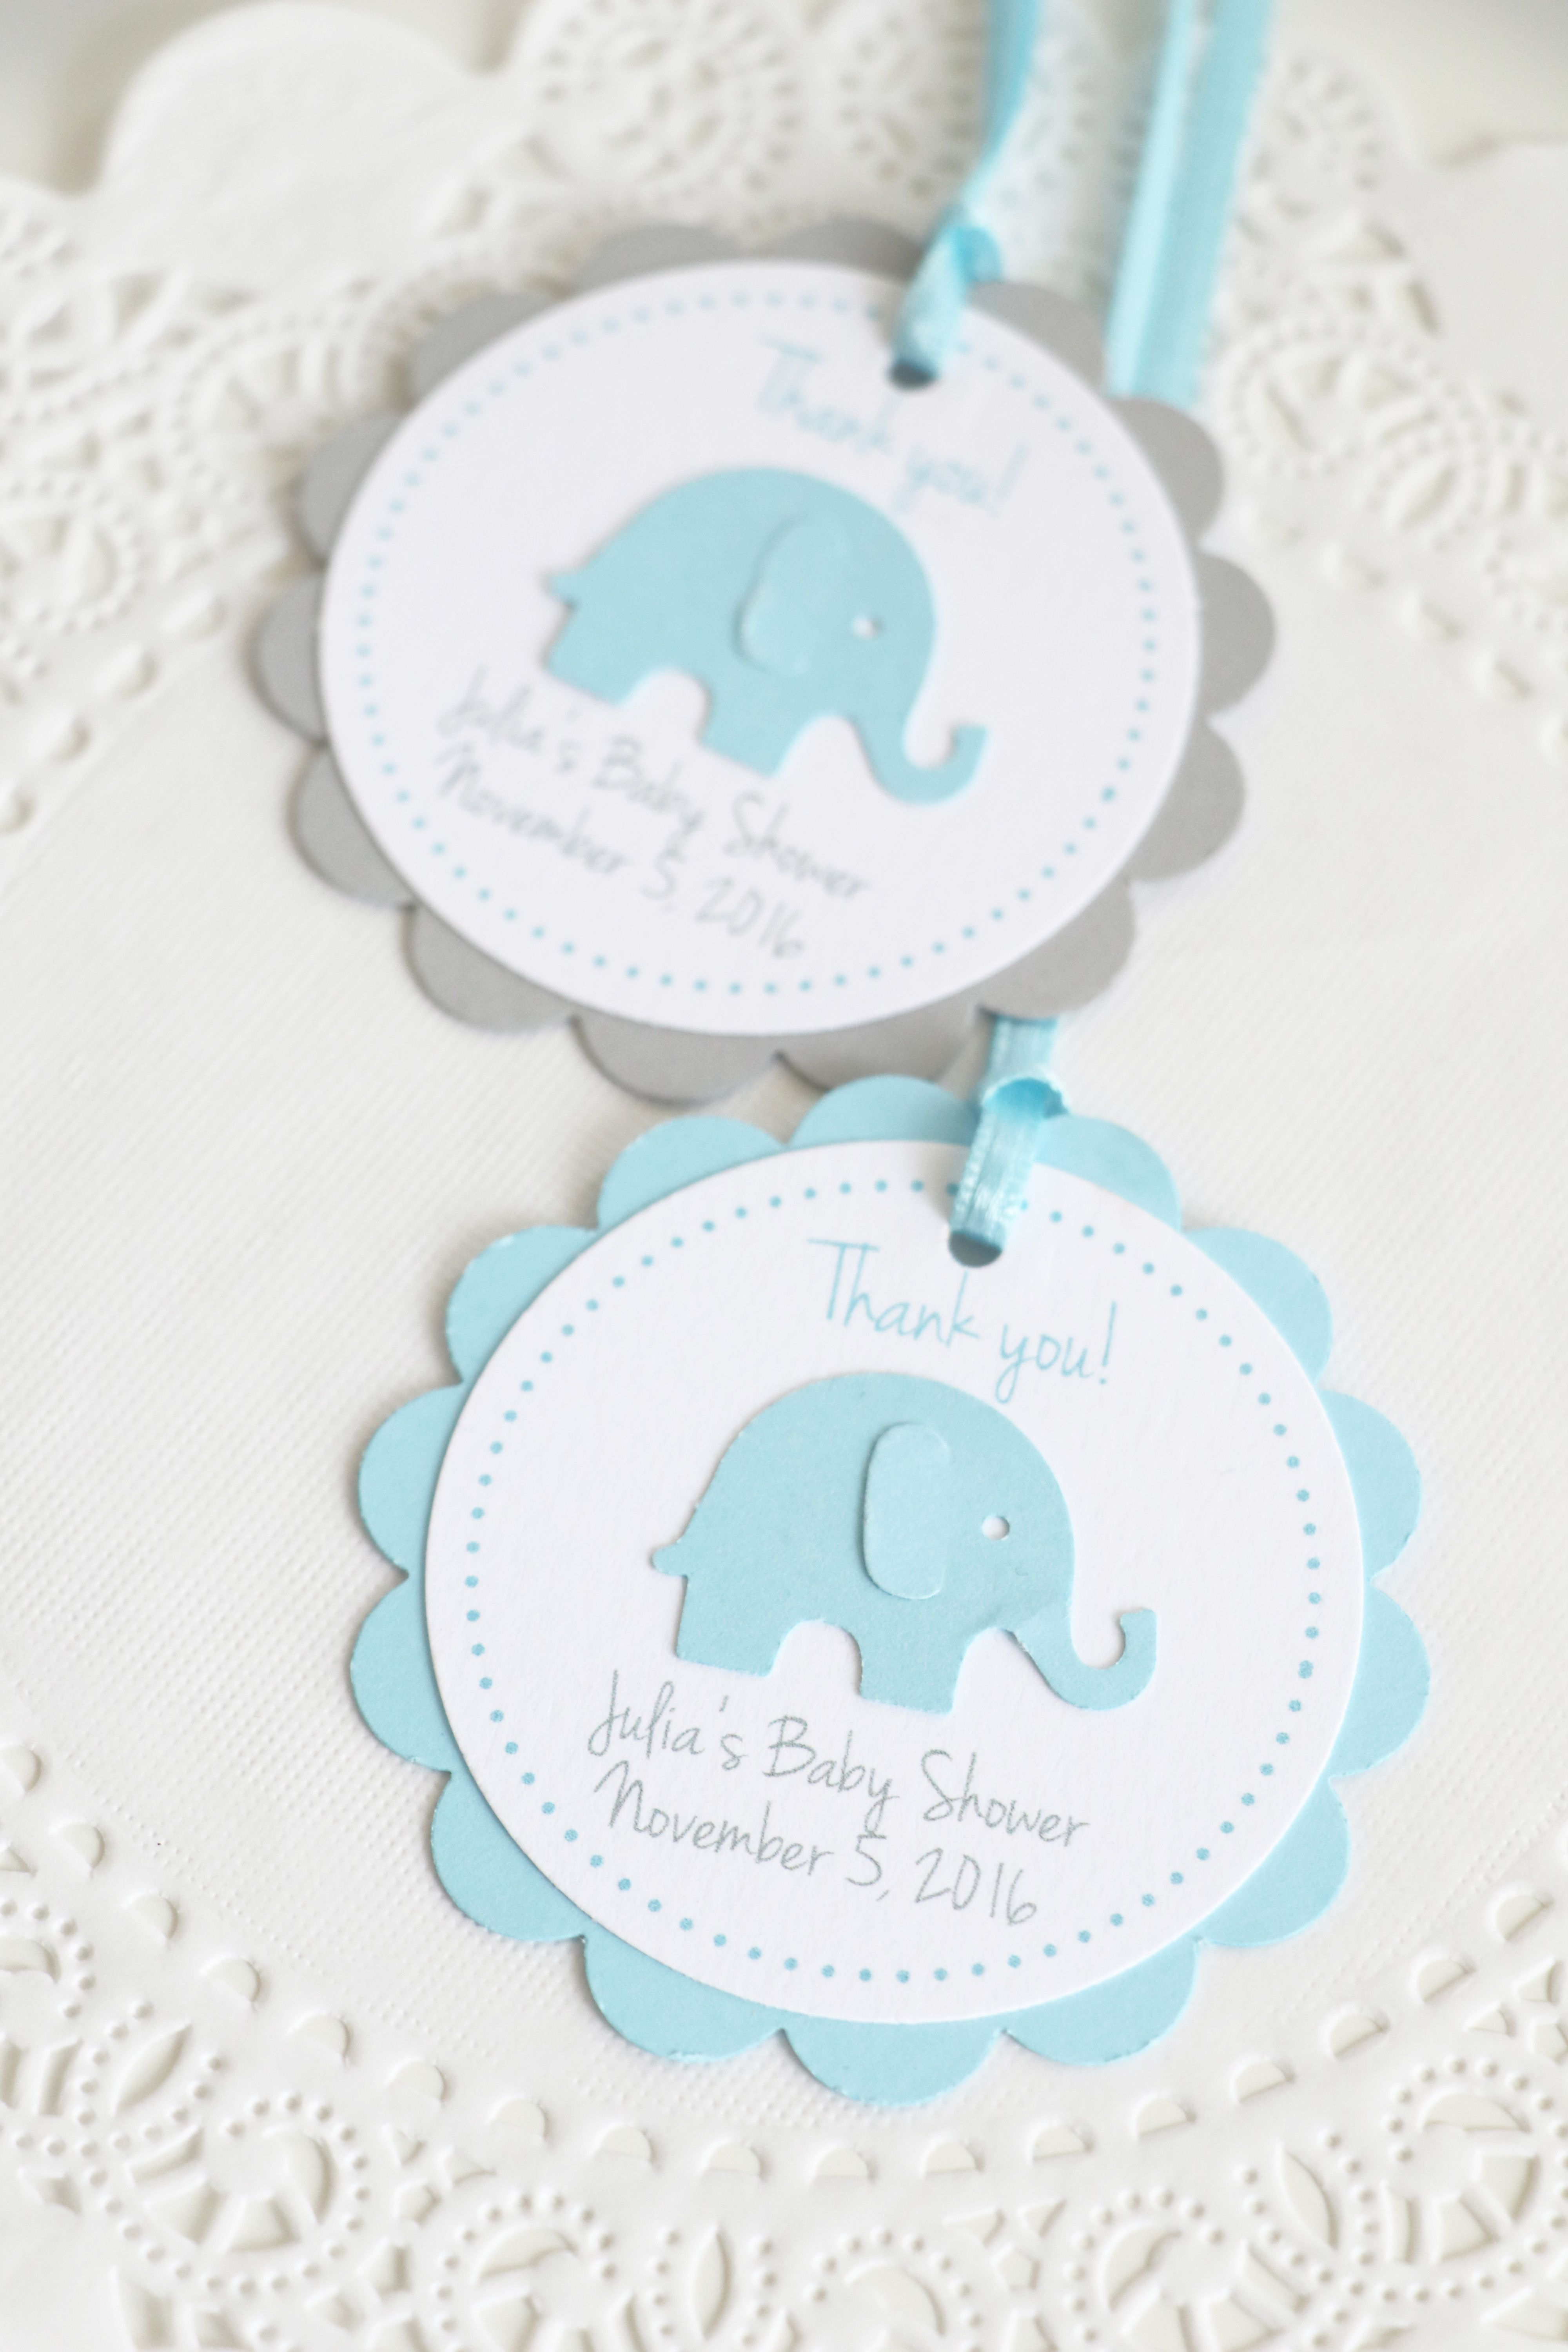 personalized tags for birthday favors ; 32c4654471eeb7191078695a0965882b